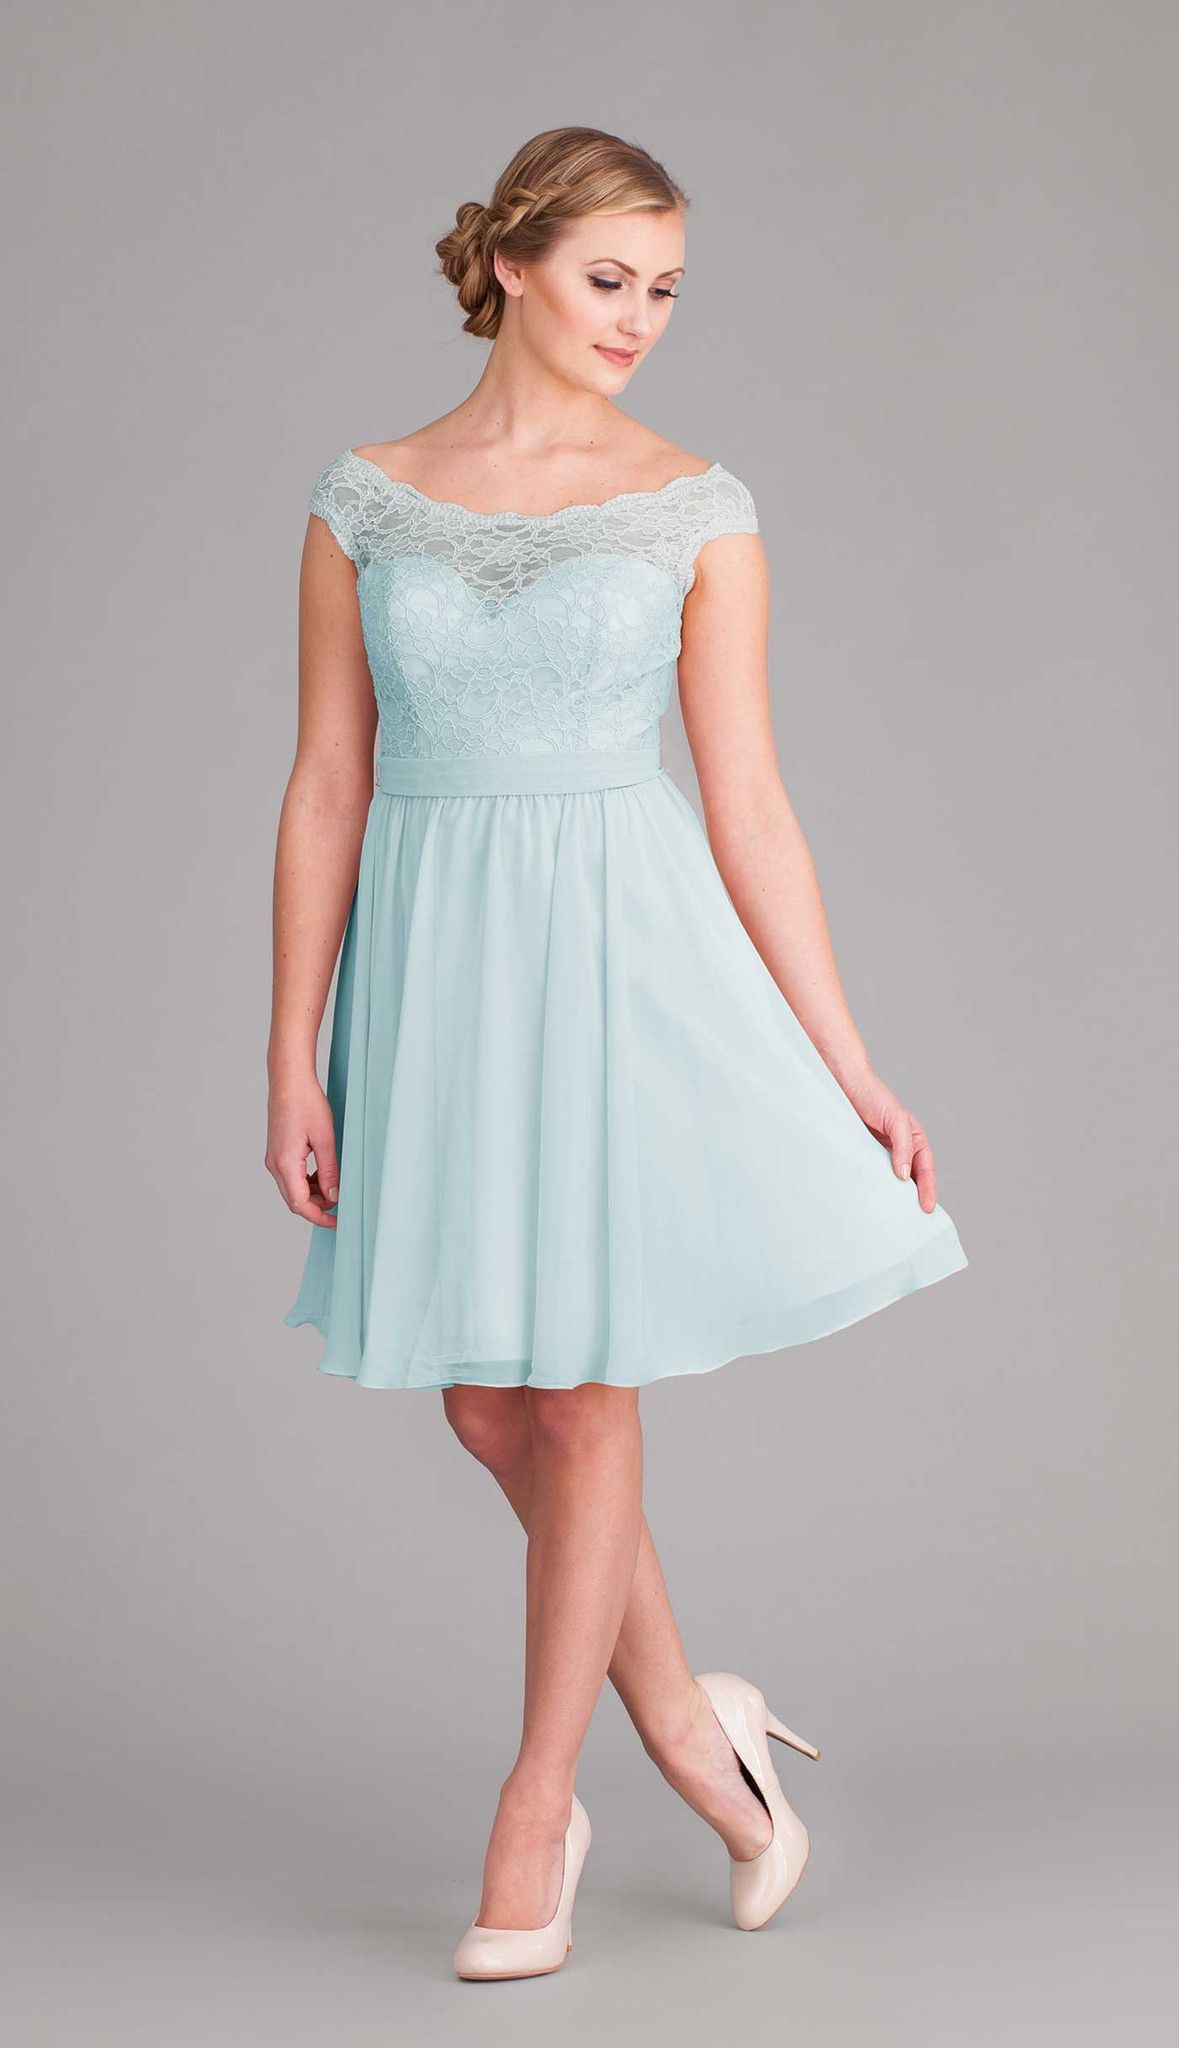 Brynn | Chiffon bridesmaid dresses, Lace top bridesmaid dresses and ...